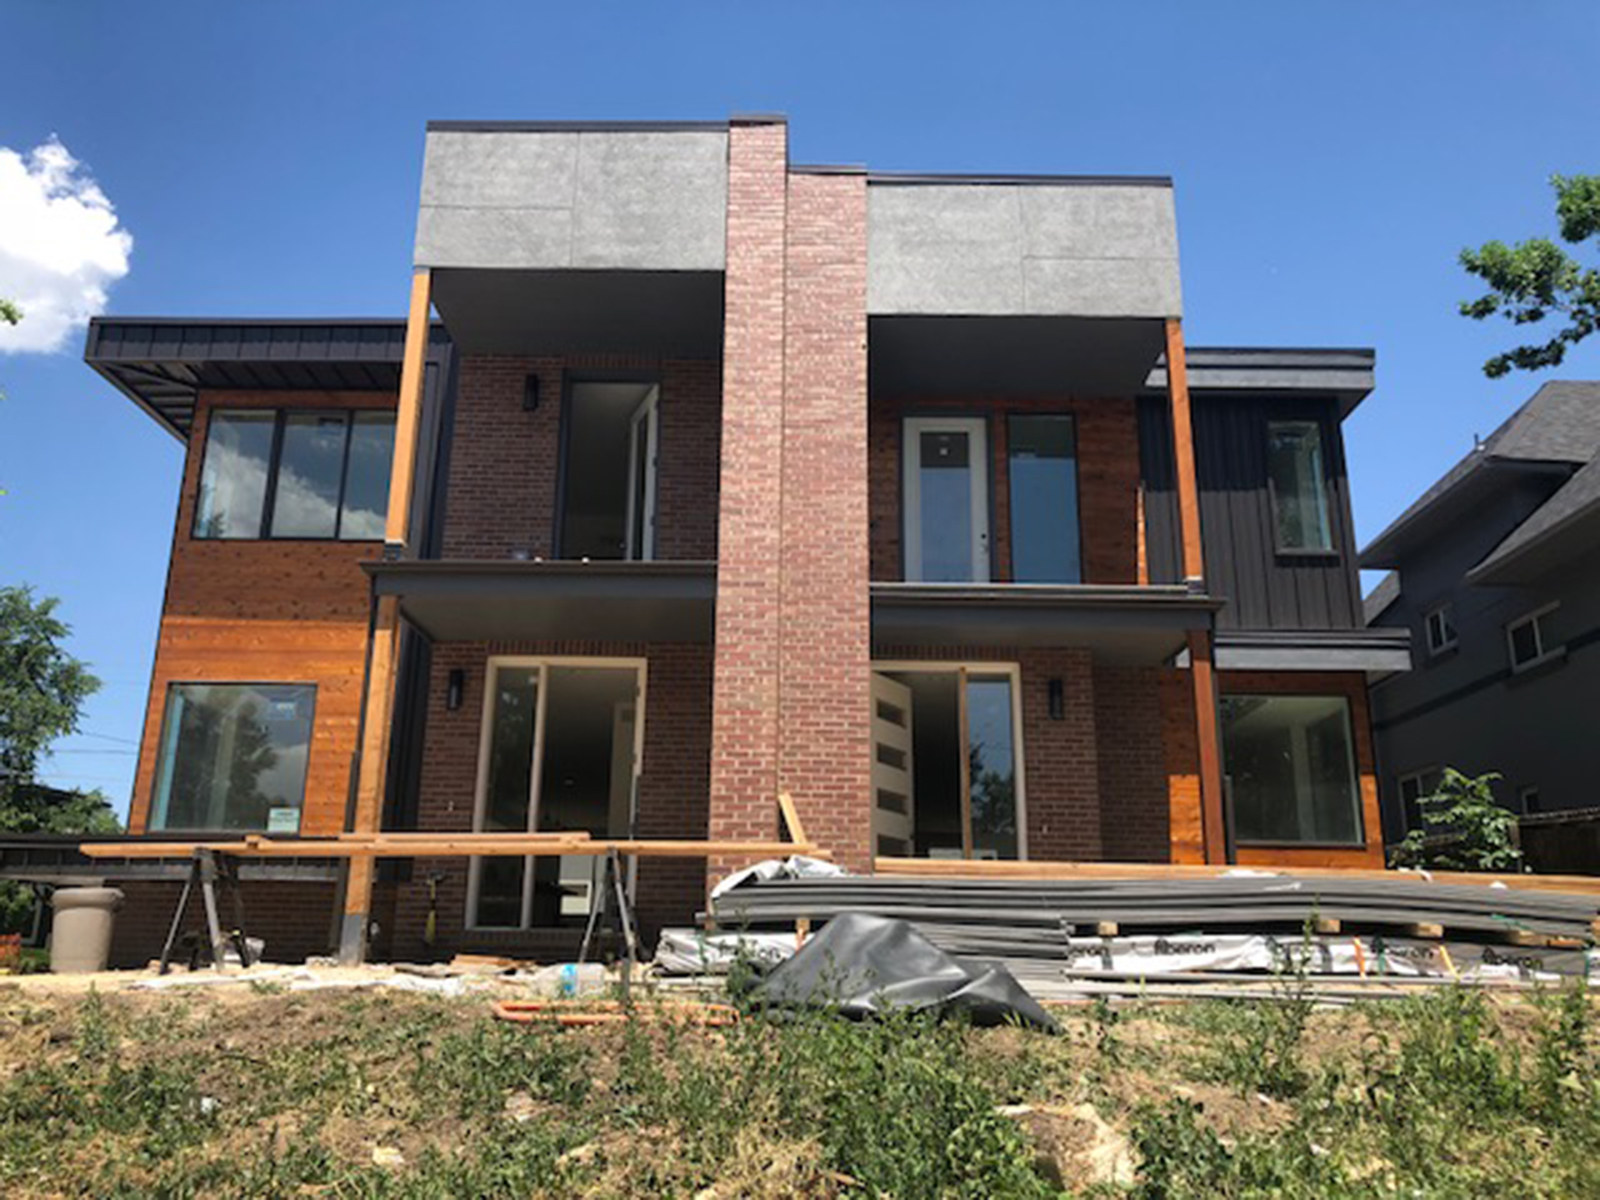 Property for Active at New Duplex Located On Great Corner Of Sloan's Lake Neighbborhood! 3395 W 23rd Ave Denver, Colorado 80211 United States